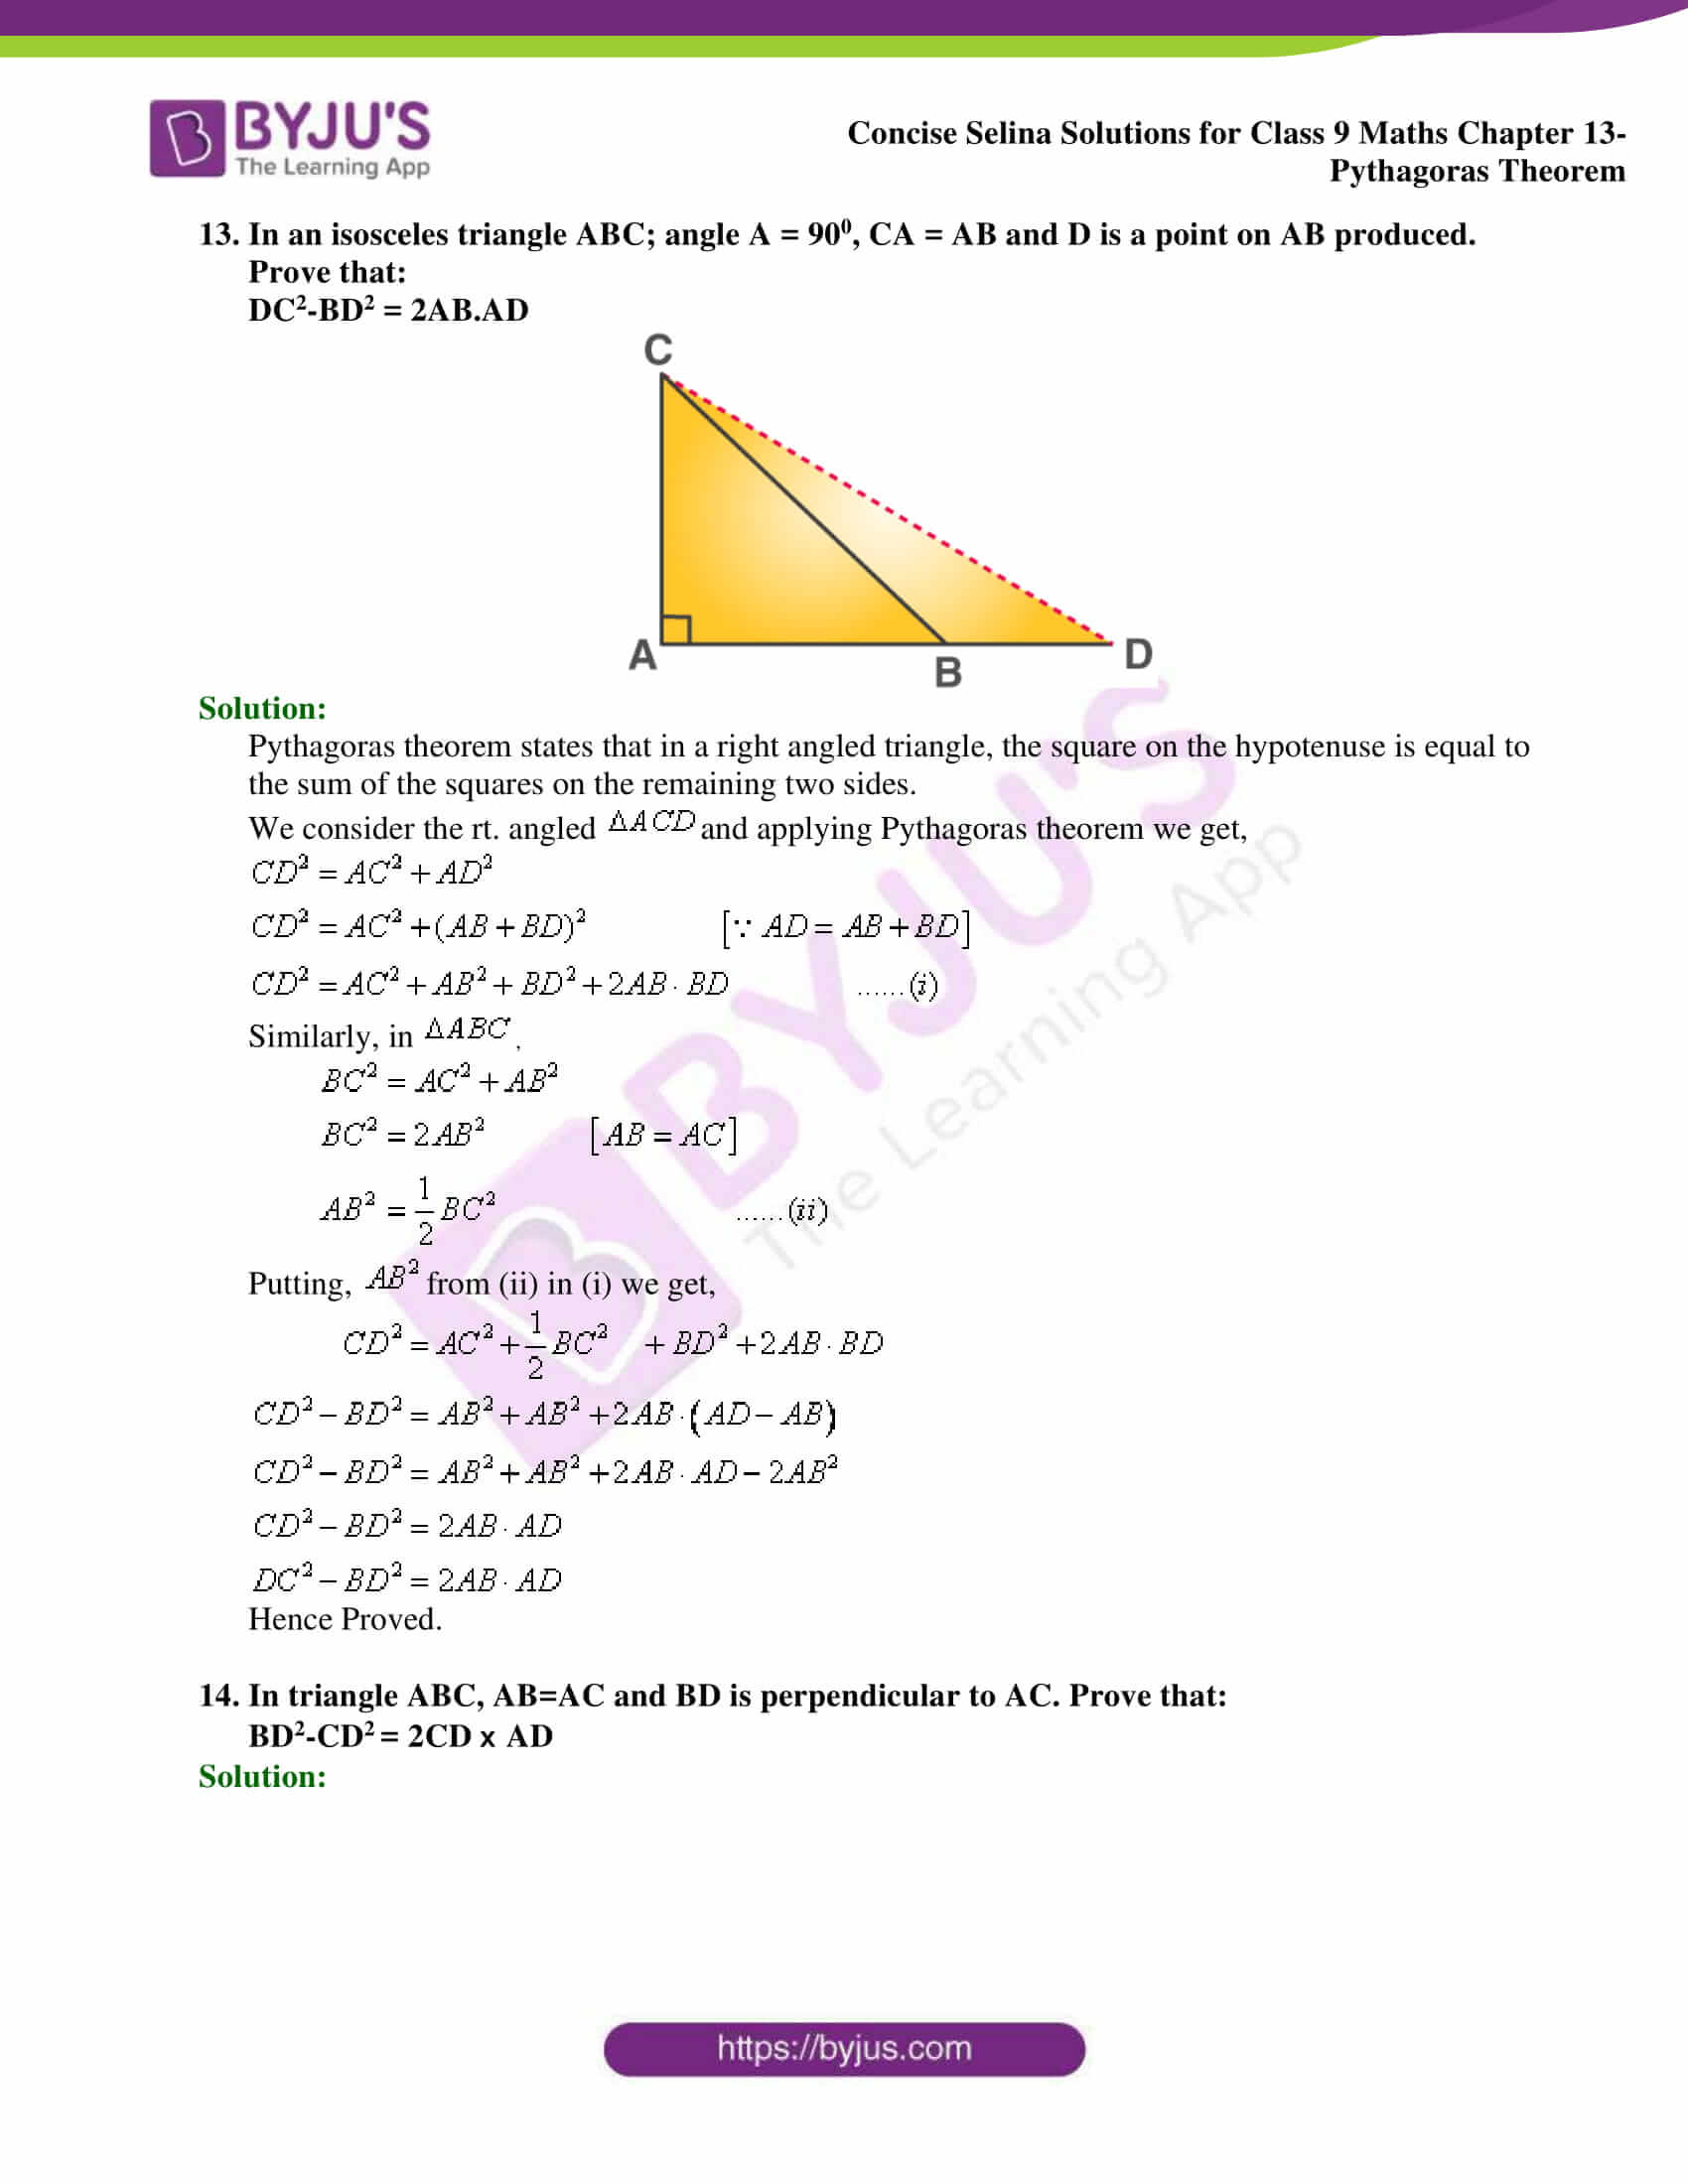 selina Solutions for Class 9 Maths Chapter 13 part 21